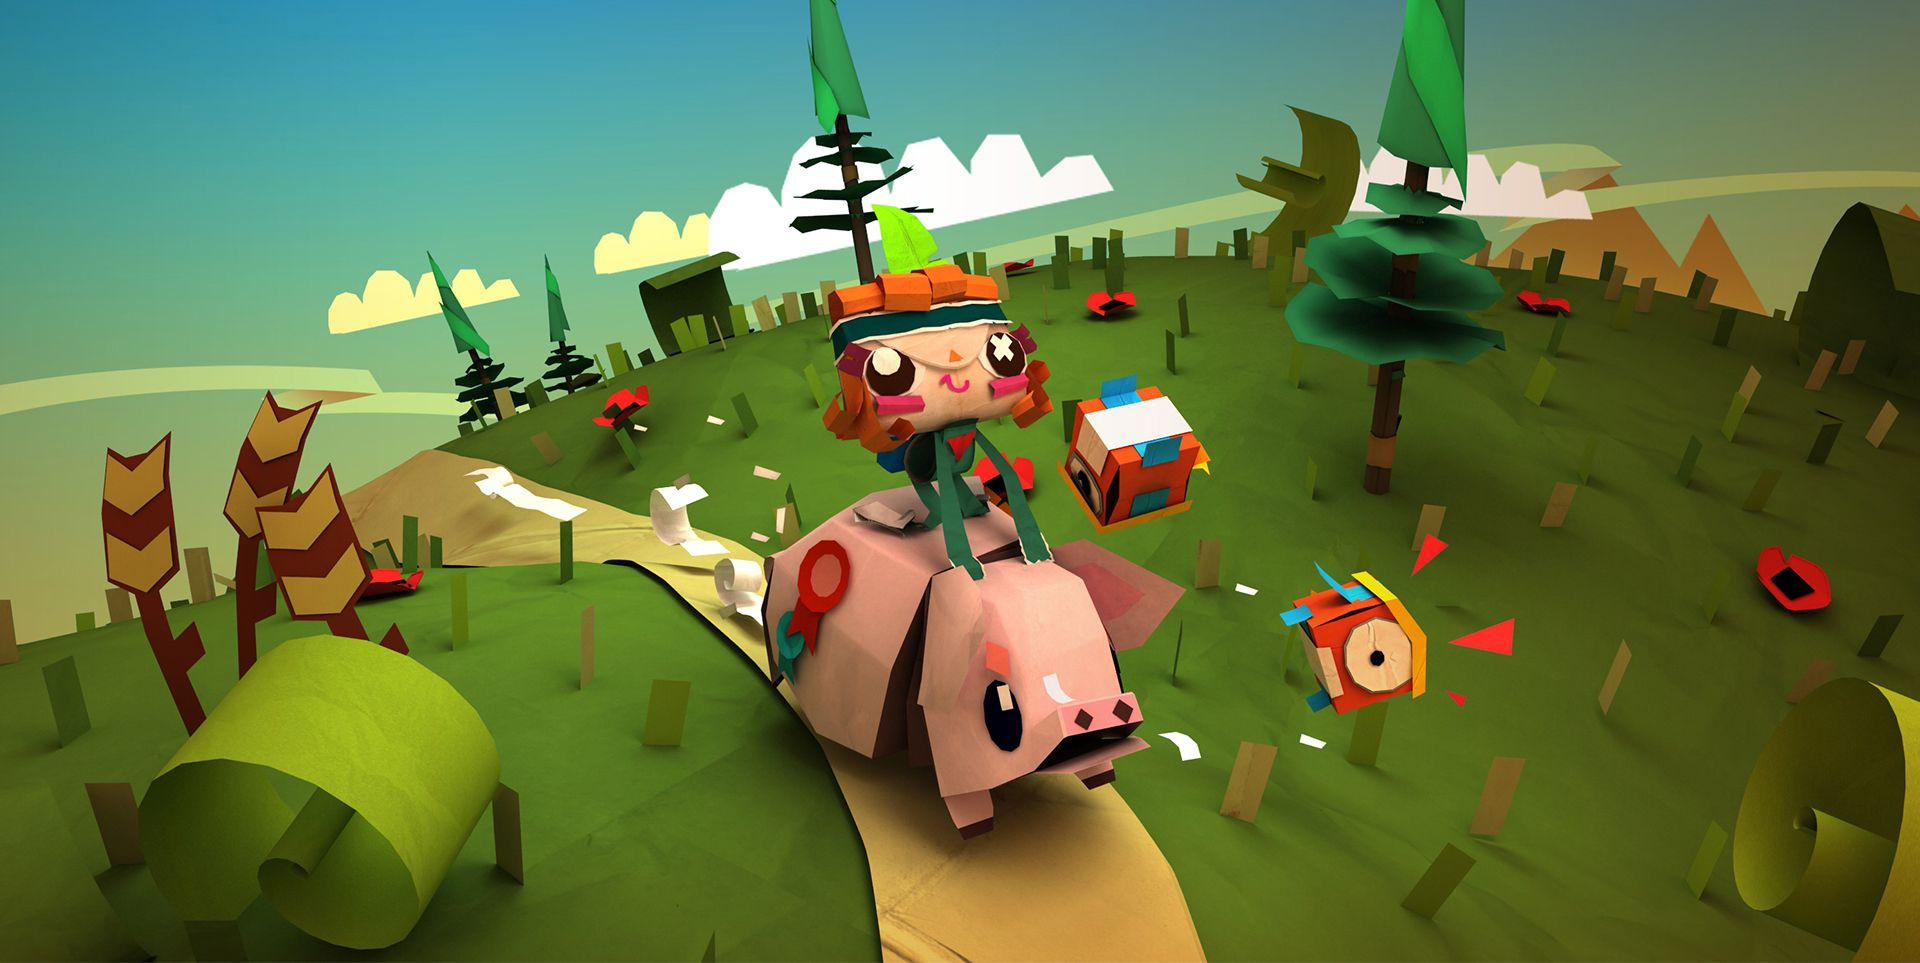 Publicity still for Tearaway